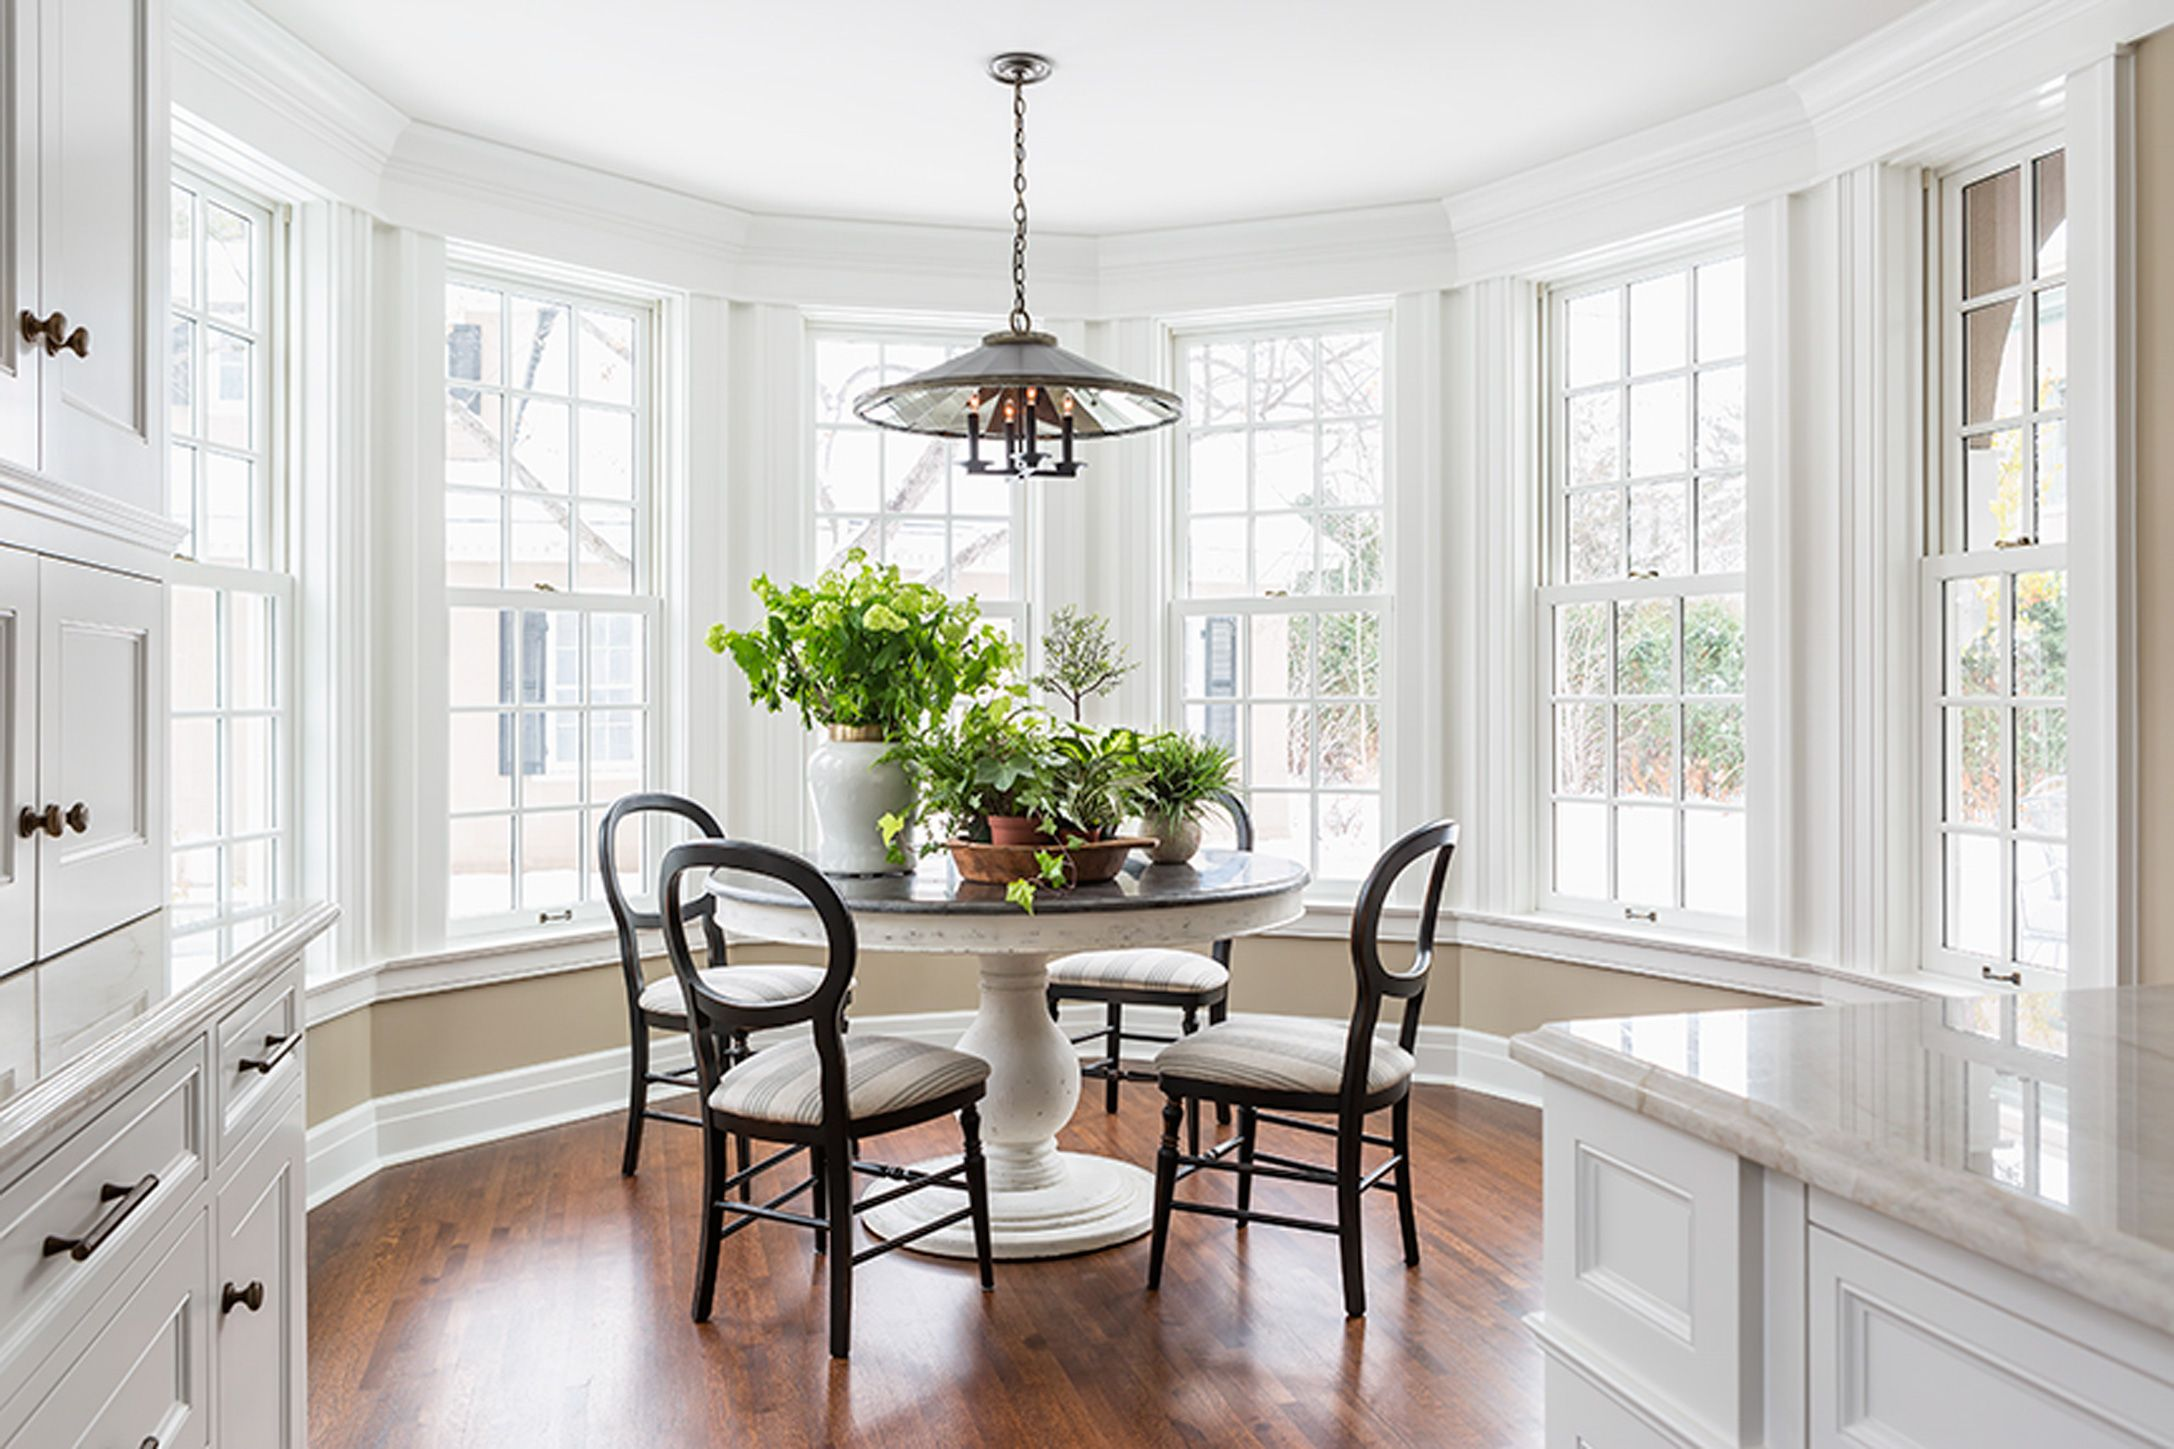 Check Out This Image From The Urban Electric Co Flush Mount Kitchen LightingDining Room